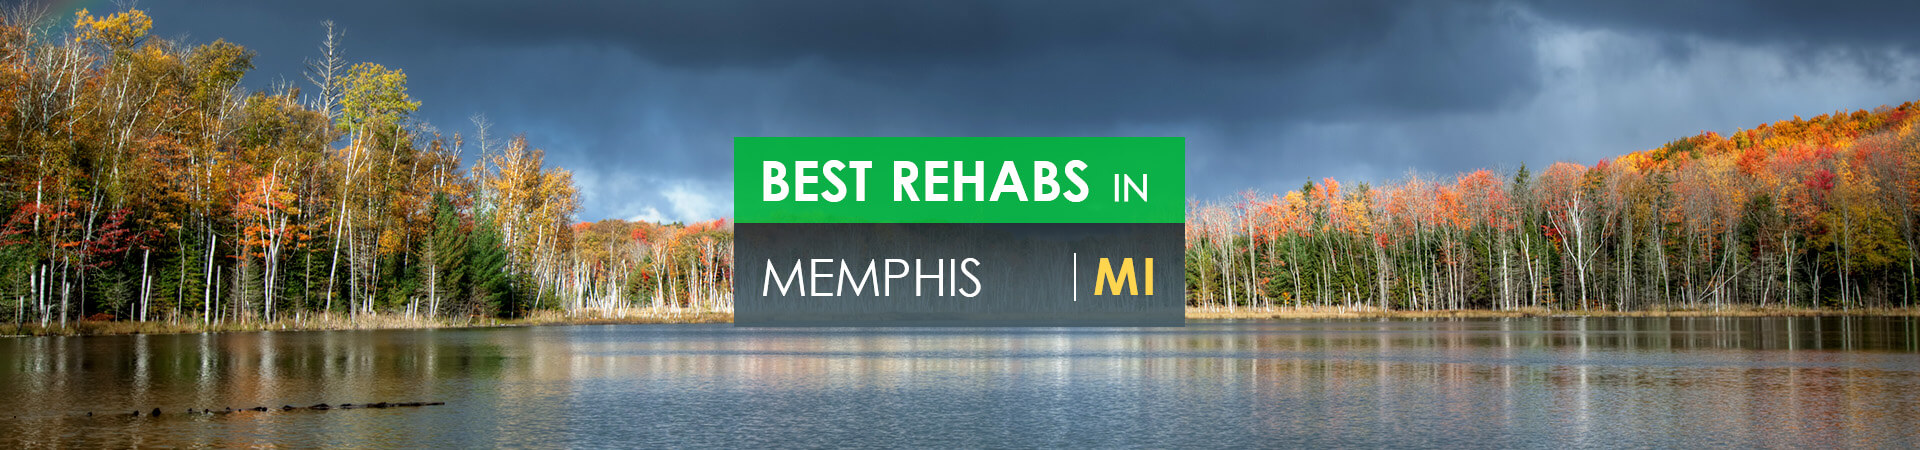 Best rehabs in Memphis, MI